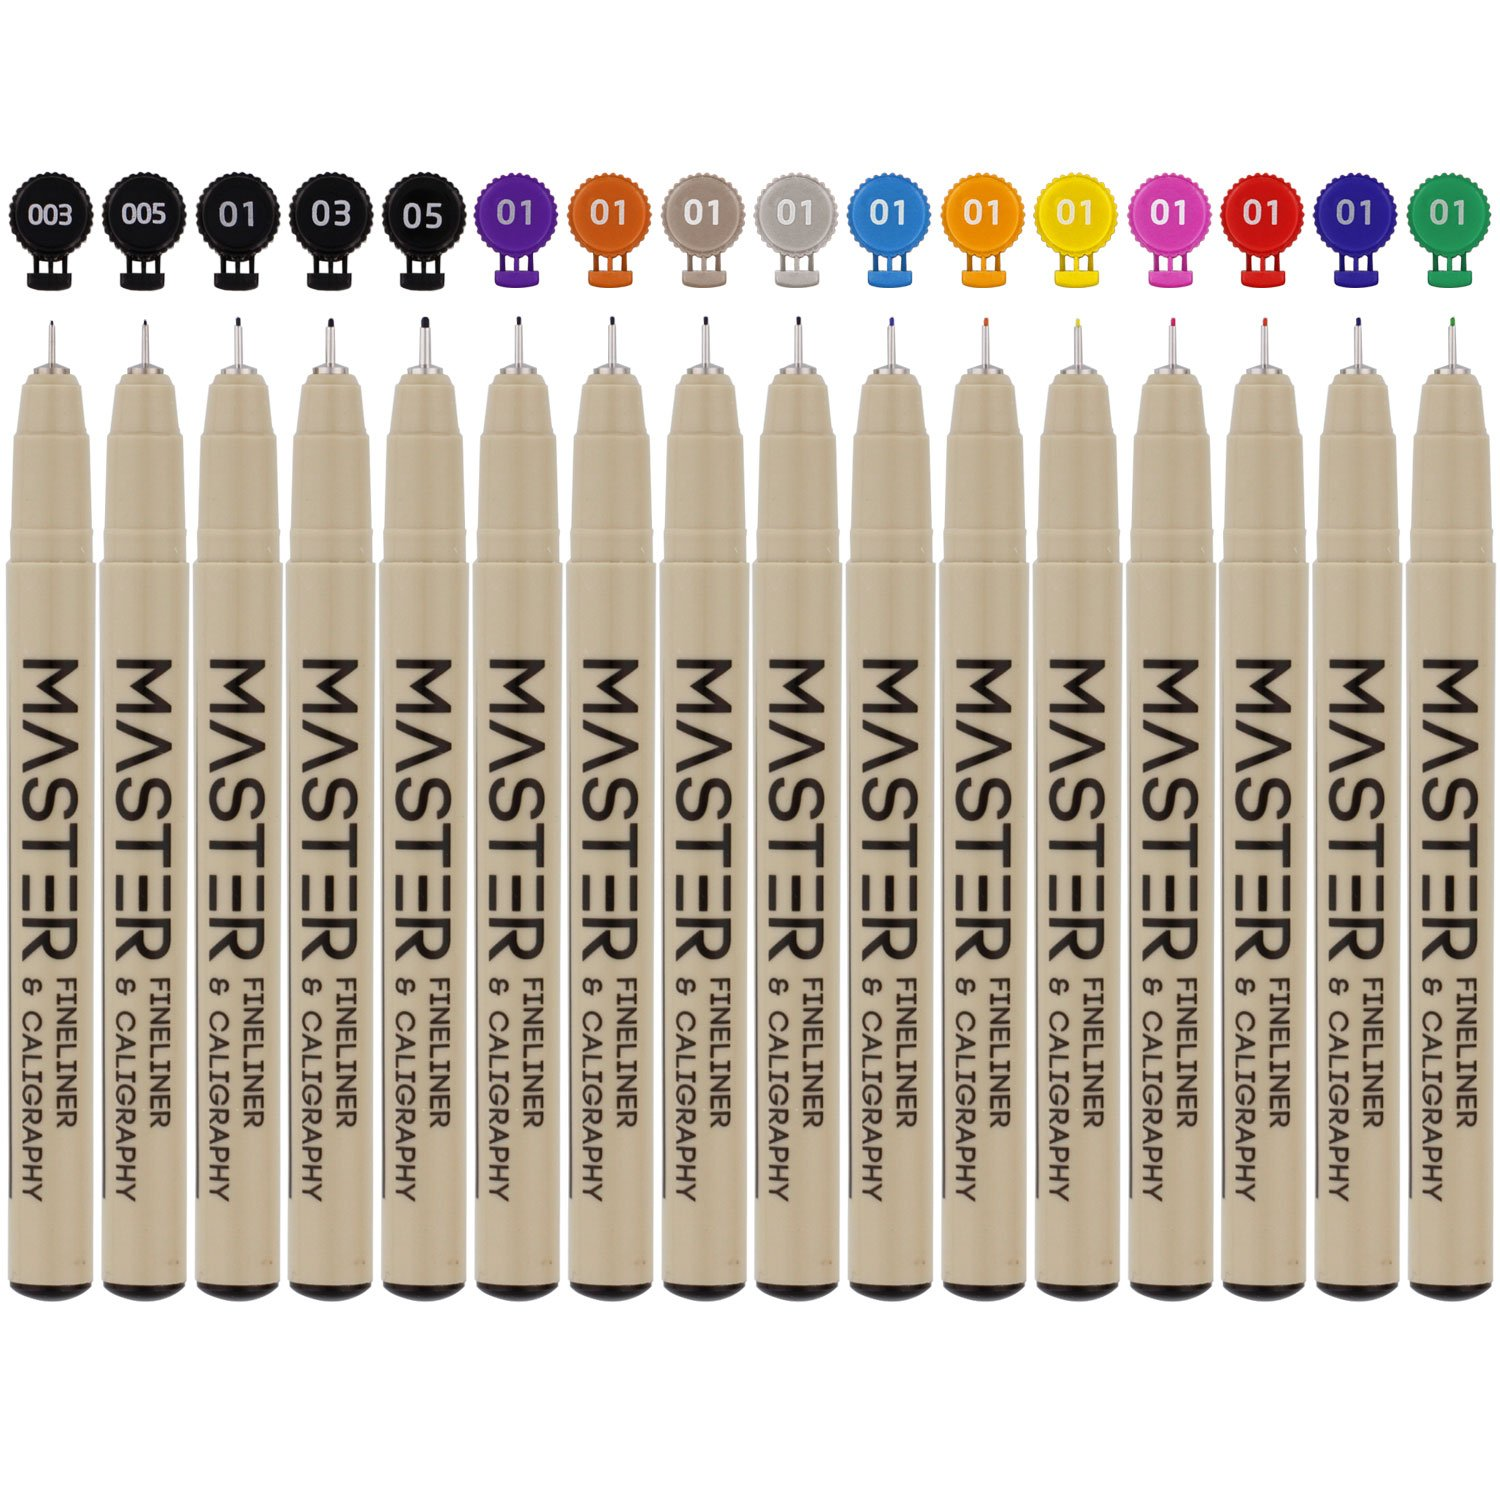 Set of 32 Unique Black and Colored Master Markers Micro-Pen Fineliner Ink Pens - 11 Vibrant Colors & 21 Black Micro Fine Point, Chisel, Brush & Calligraphy Tip Nibs - Artist Illustration Drawing by Mastermarkers (Image #5)